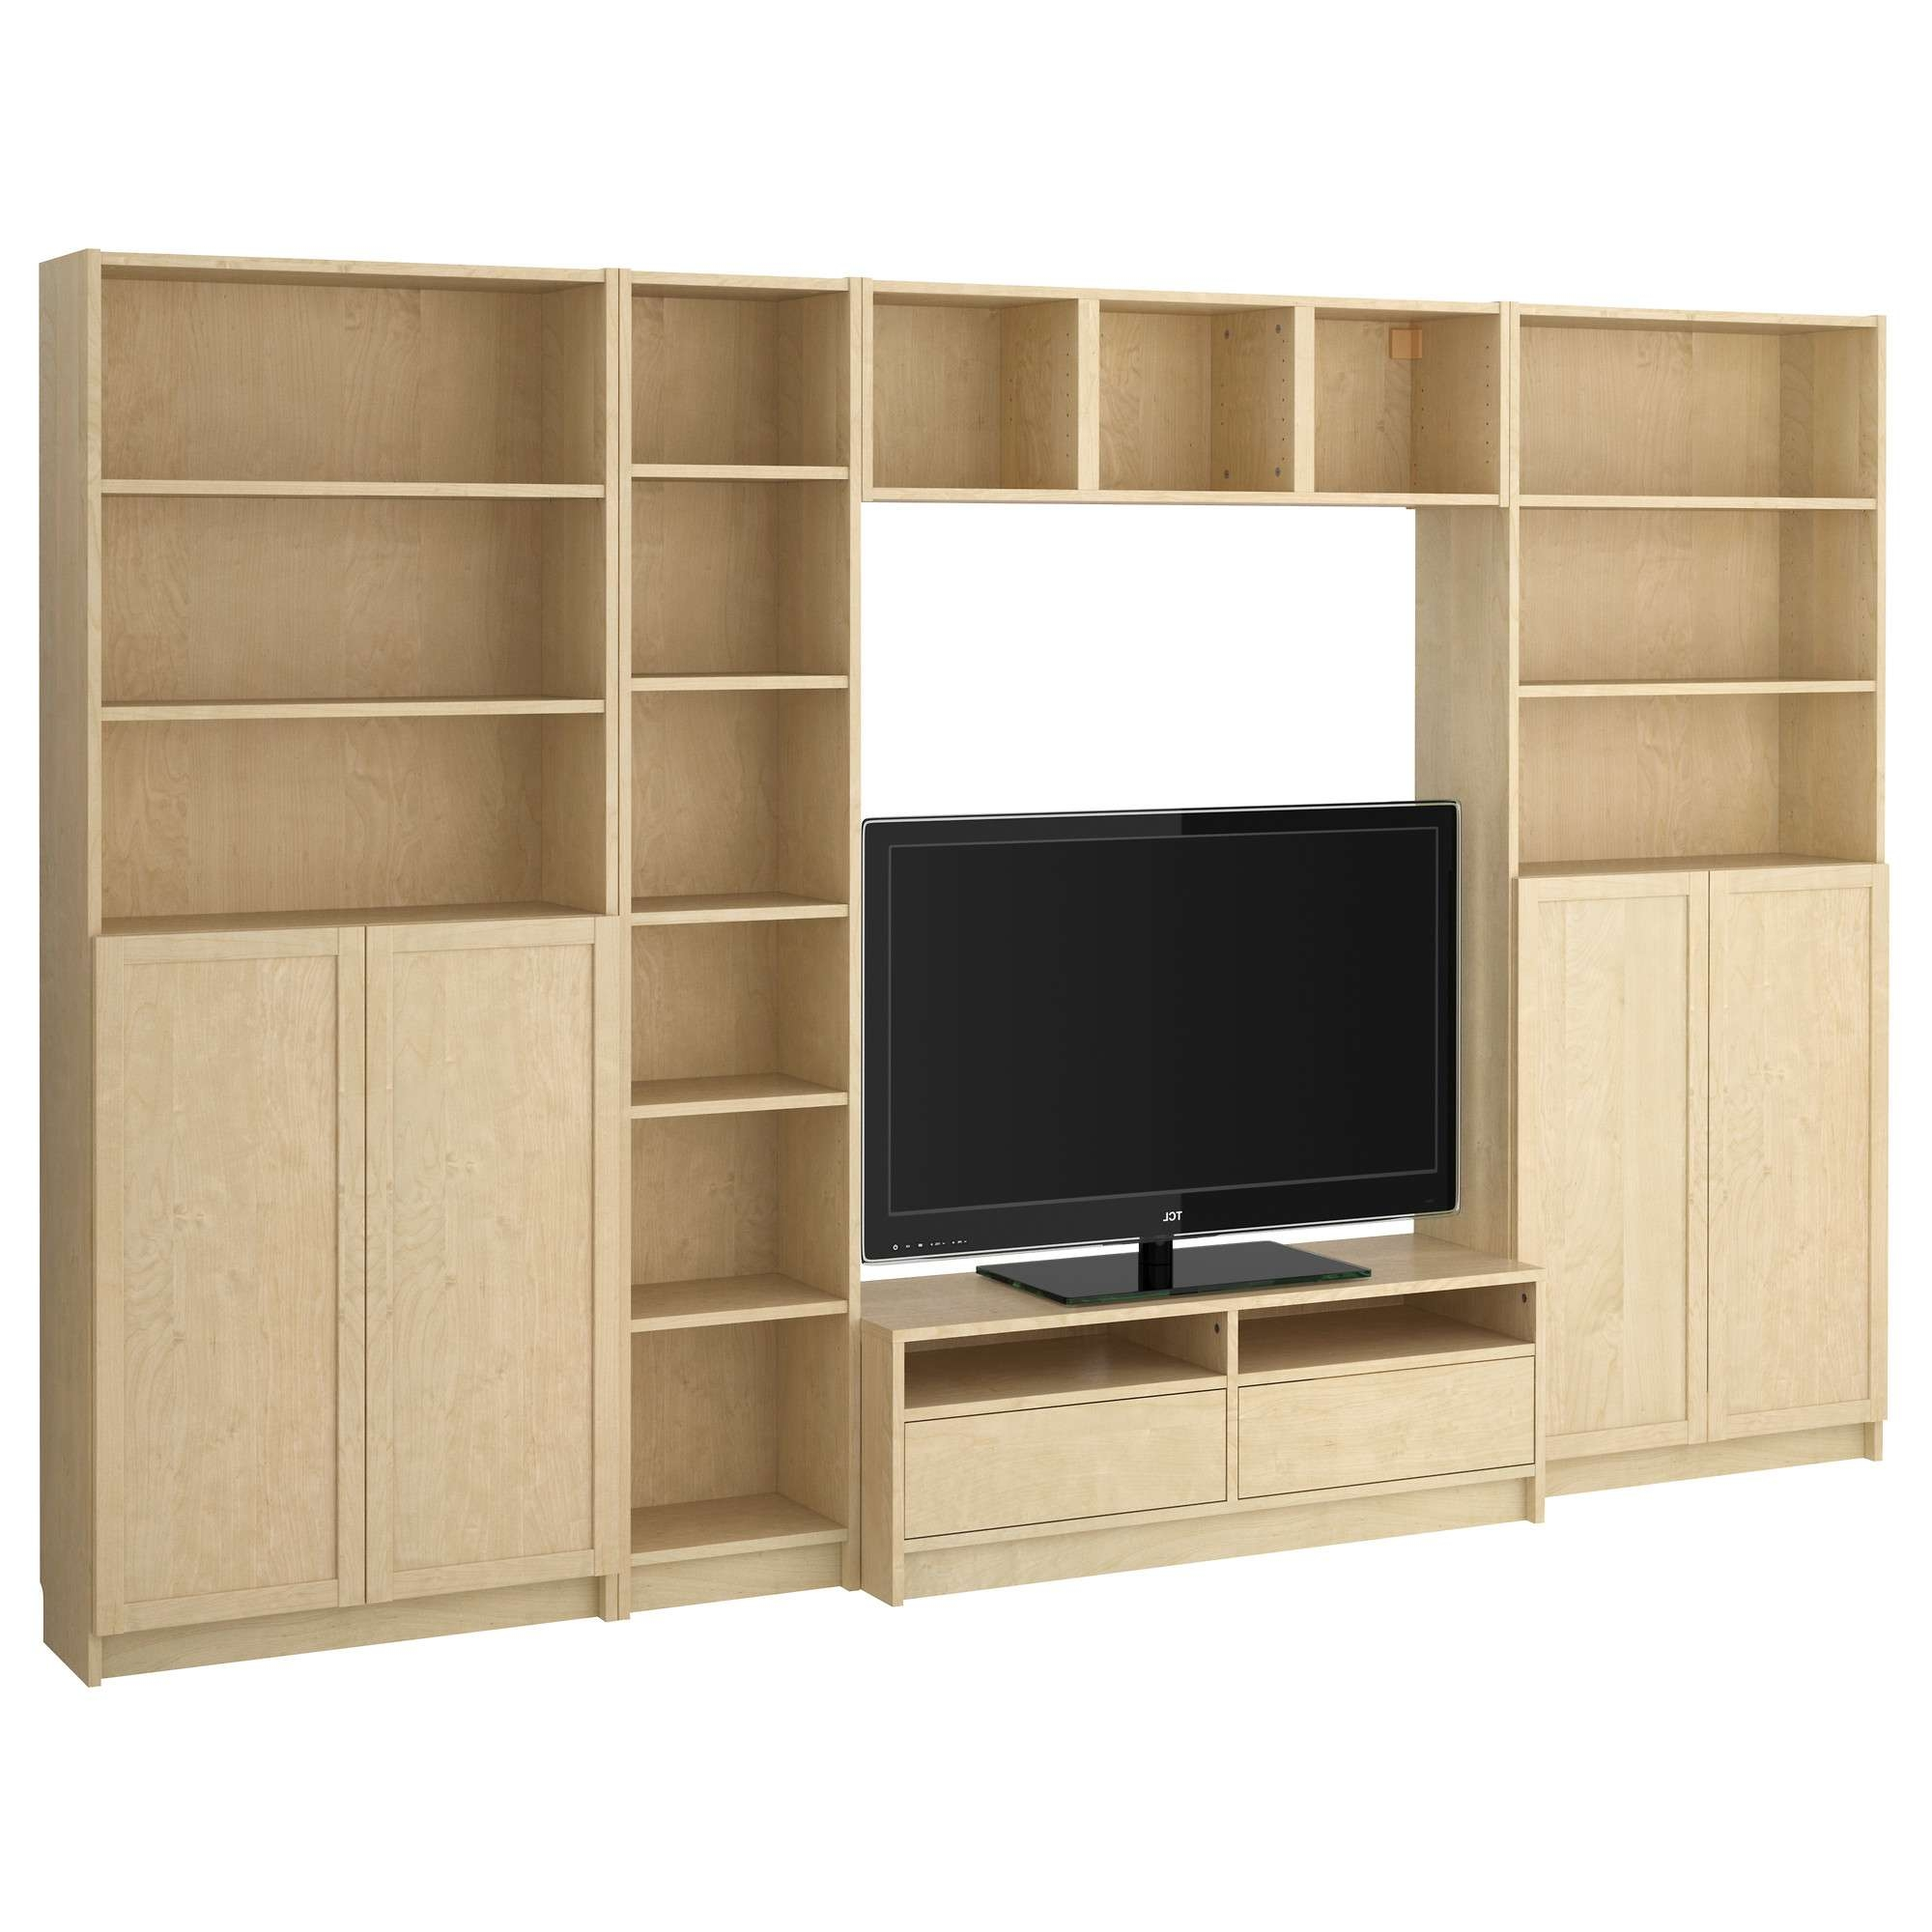 Shelves : Fabulous Entertainment Centers Ikea Tv Stands Costco With Regard To Tv Cabinets With Storage (View 9 of 20)